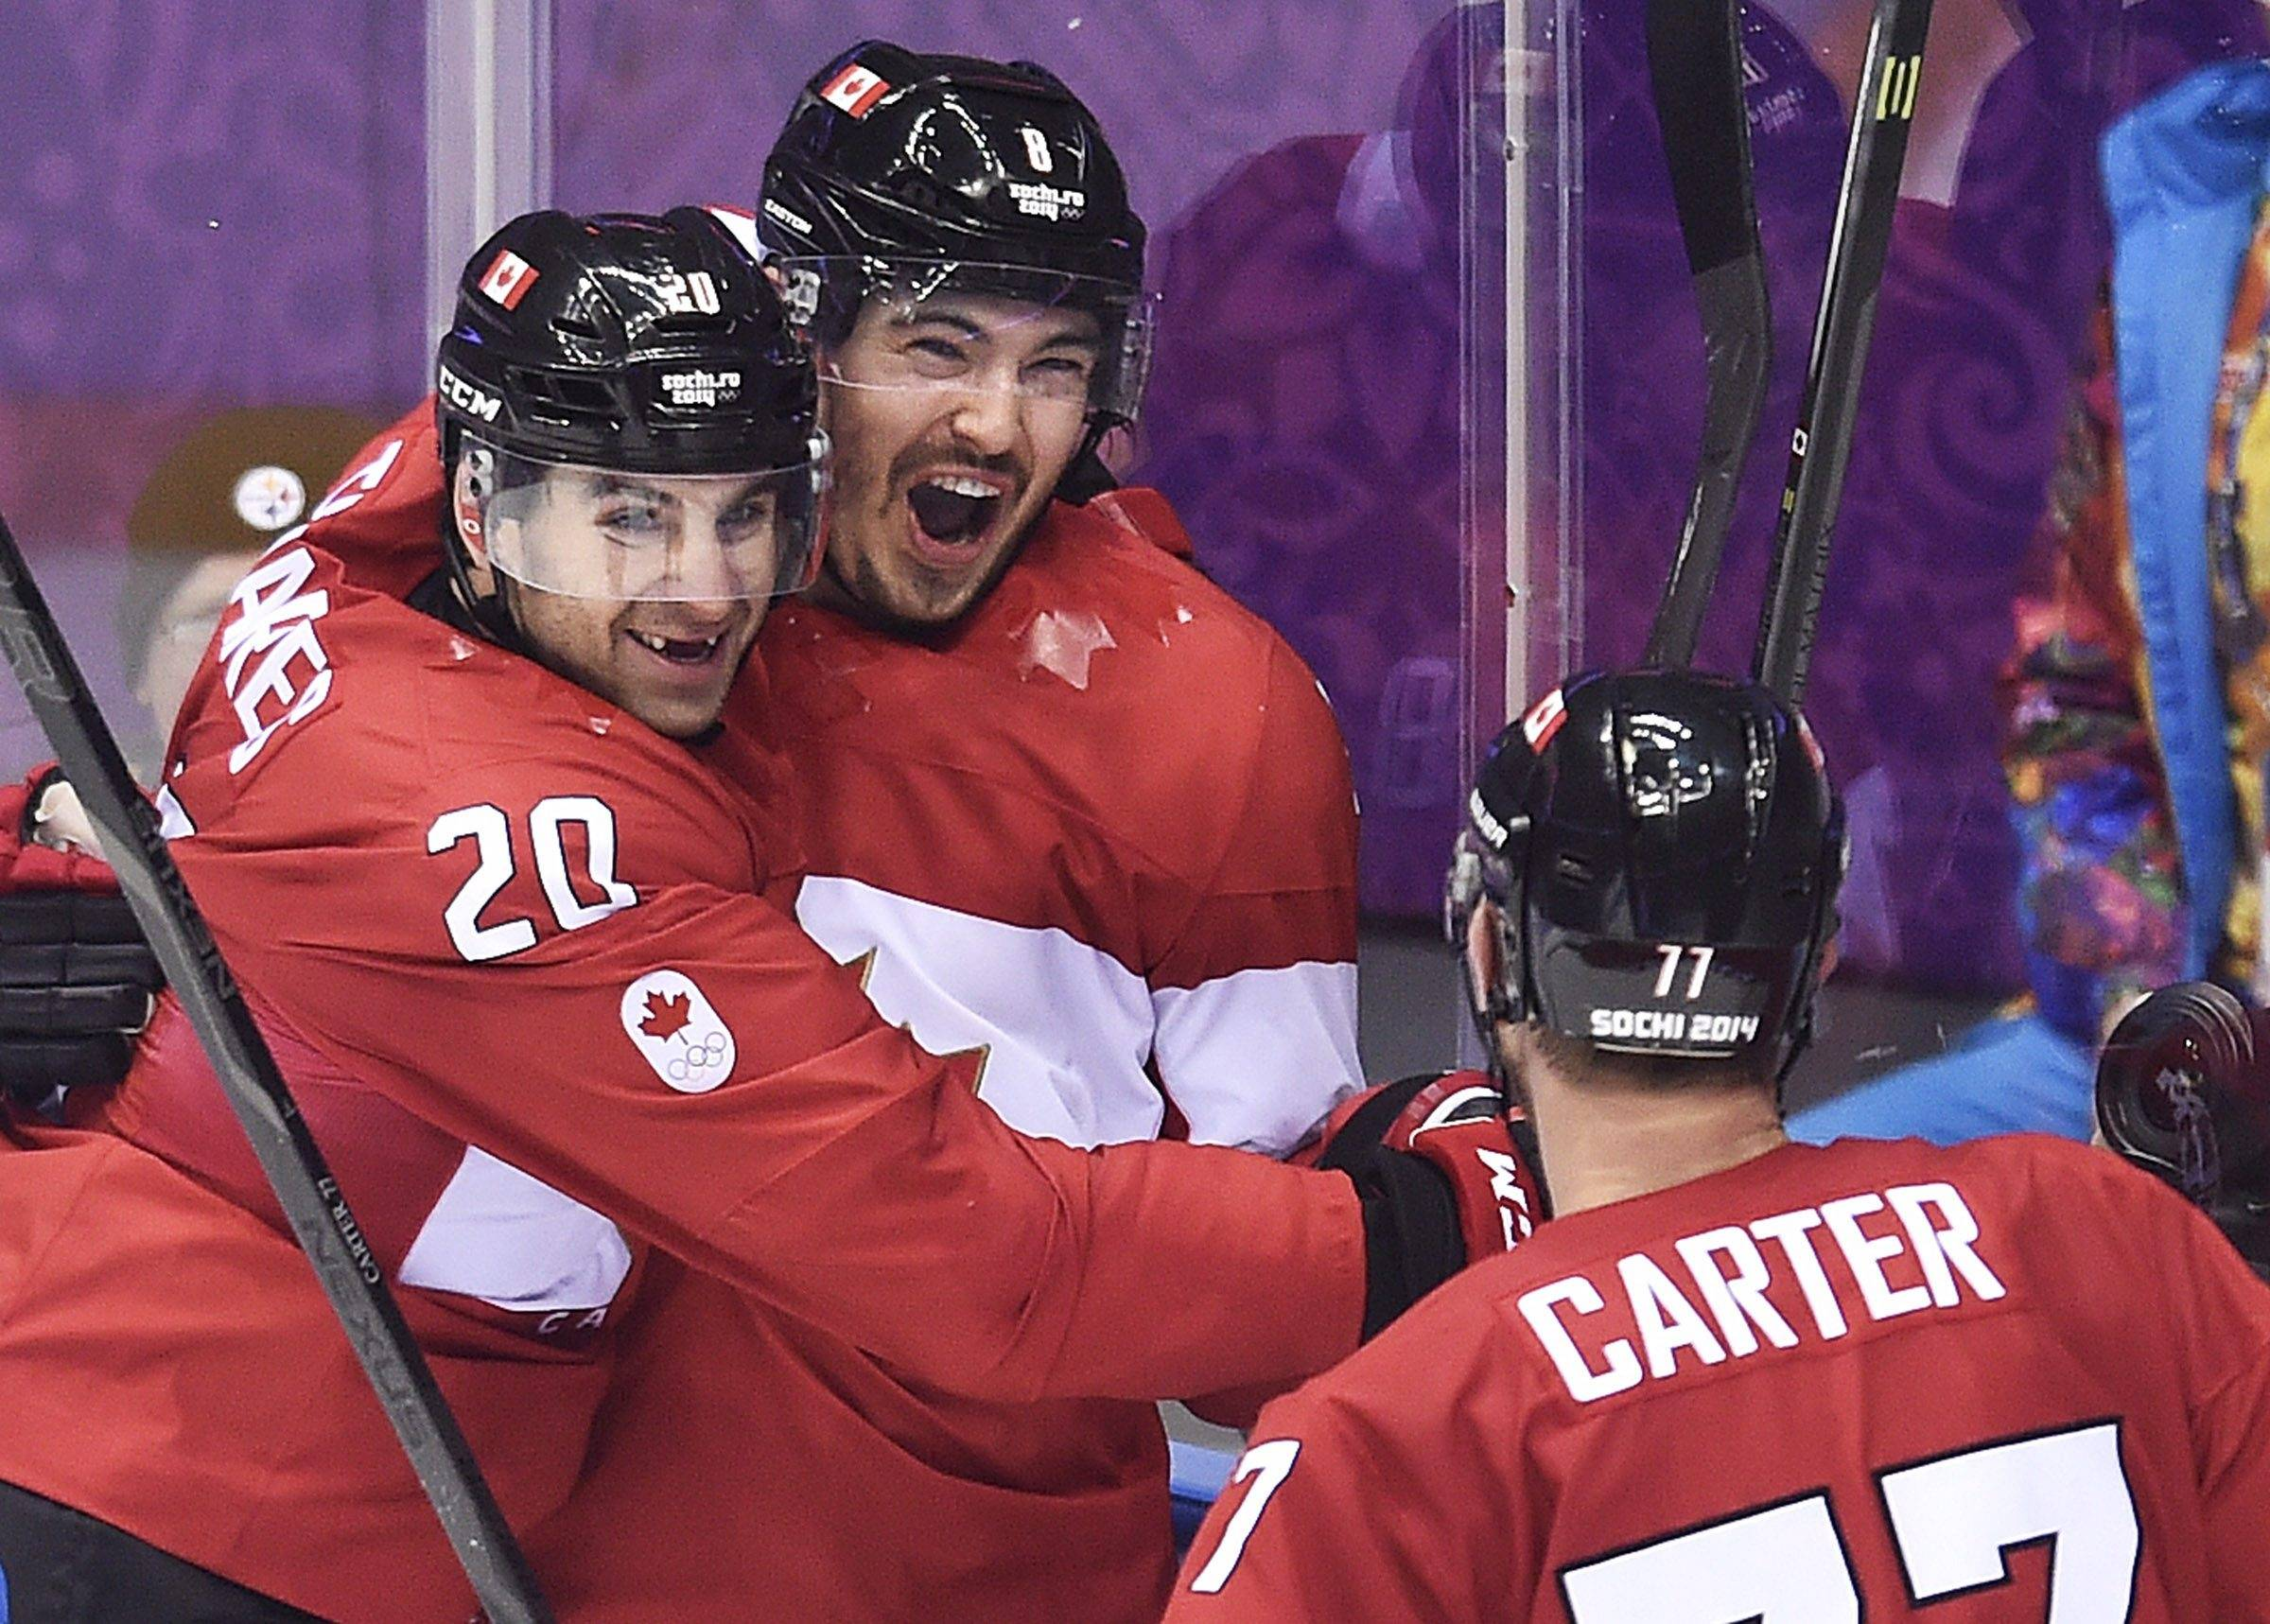 Canada defenseman Drew Doughty, center, celebrates with teammates John Tavares (20) and Jeff Carter (77) after scoring the game-winning goal in overtime against Finland in a men's ice hockey game at the Winter Olympics, Sunday, Feb. 16, 2014, in Sochi, Russia.